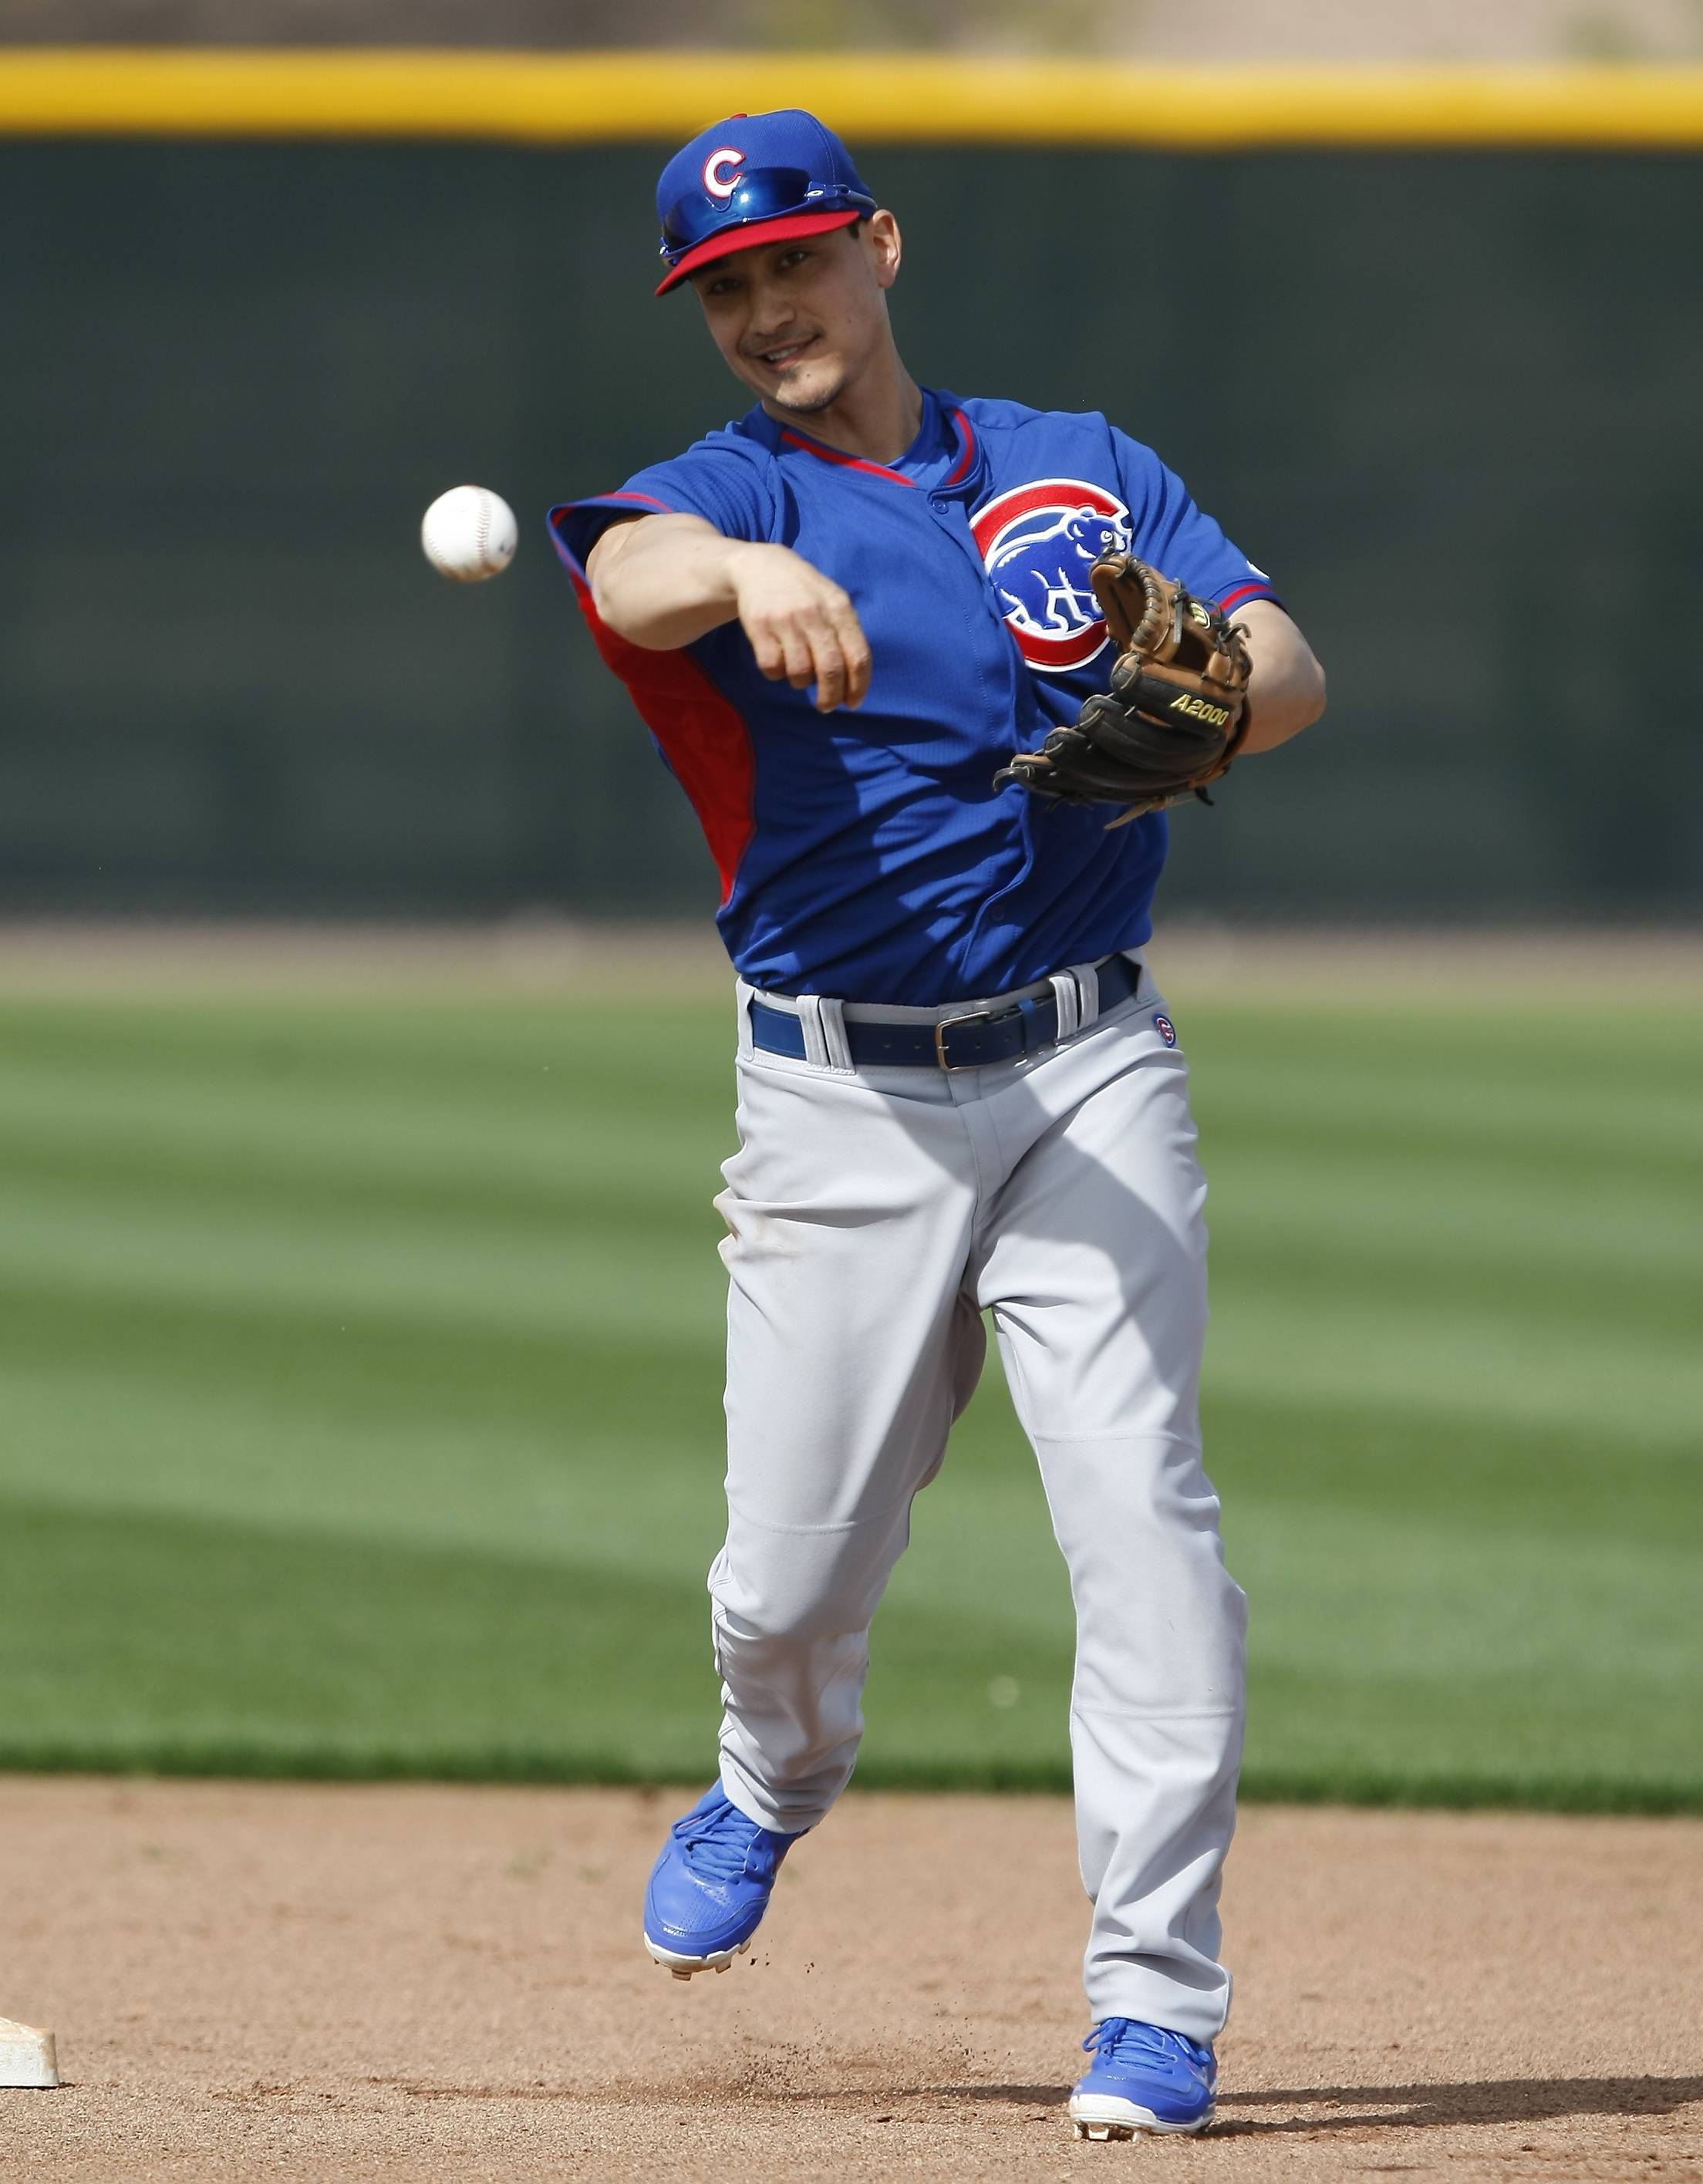 Cubs second baseman Darwin Barney fields grounders during spring-training baseball practice, Wednesday, Feb. 19, 2014, in Mesa, Ariz.